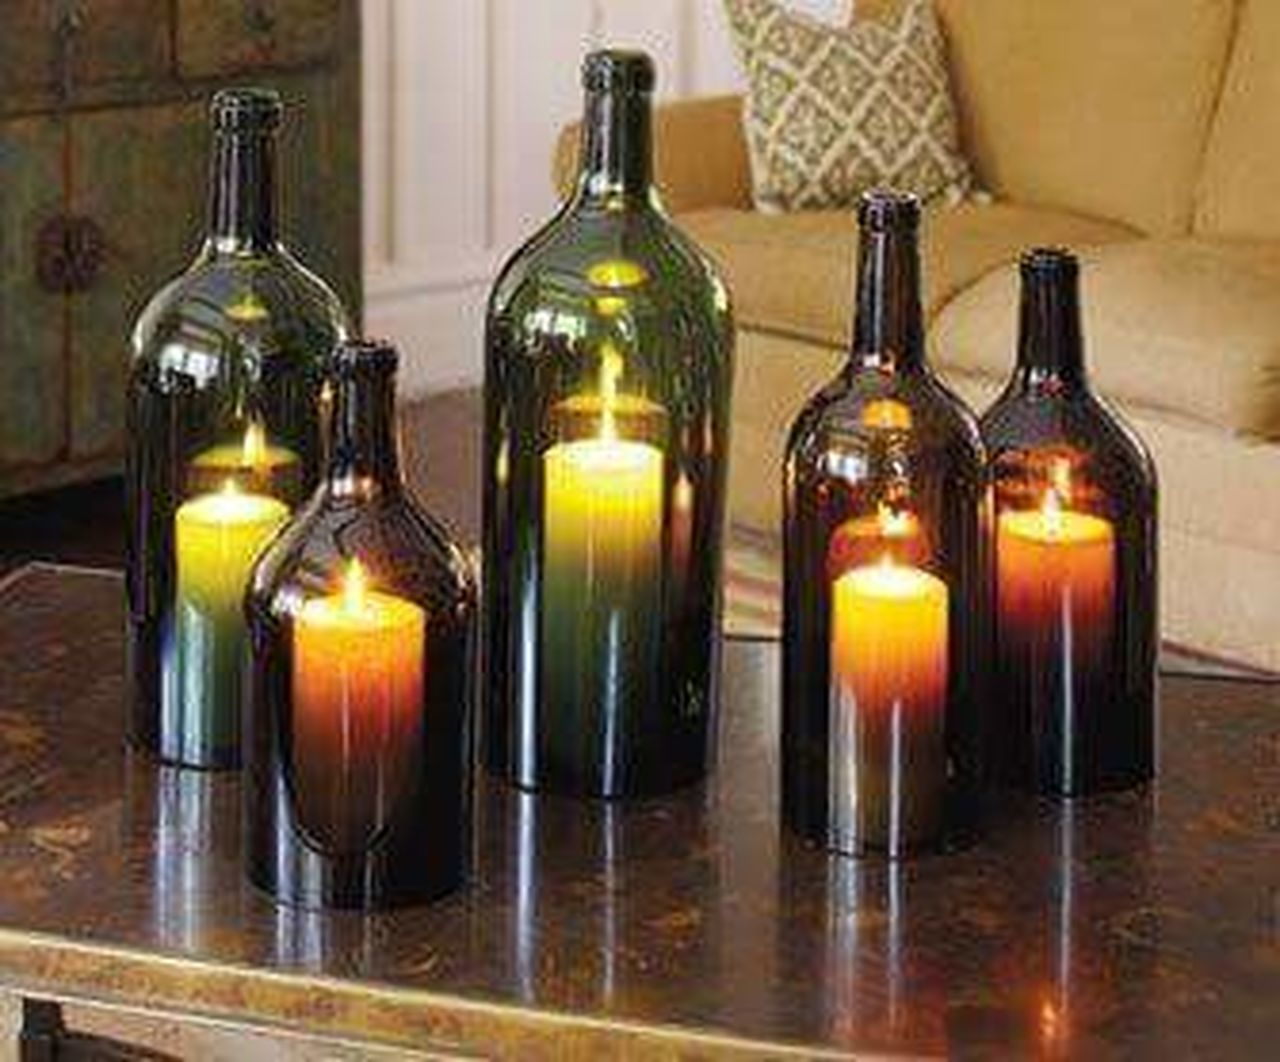 Candles Bottle Glass - Material Wine Bottle Wine Winemaking Choice Winery In A Row Alcohol Variation No People Wine Cellar Close-up Winetasting Indoors  Pinterest Crafts Lovely Candles Candles-collection Wine Bottles Loving Life  Love My Life  Fall Decorations